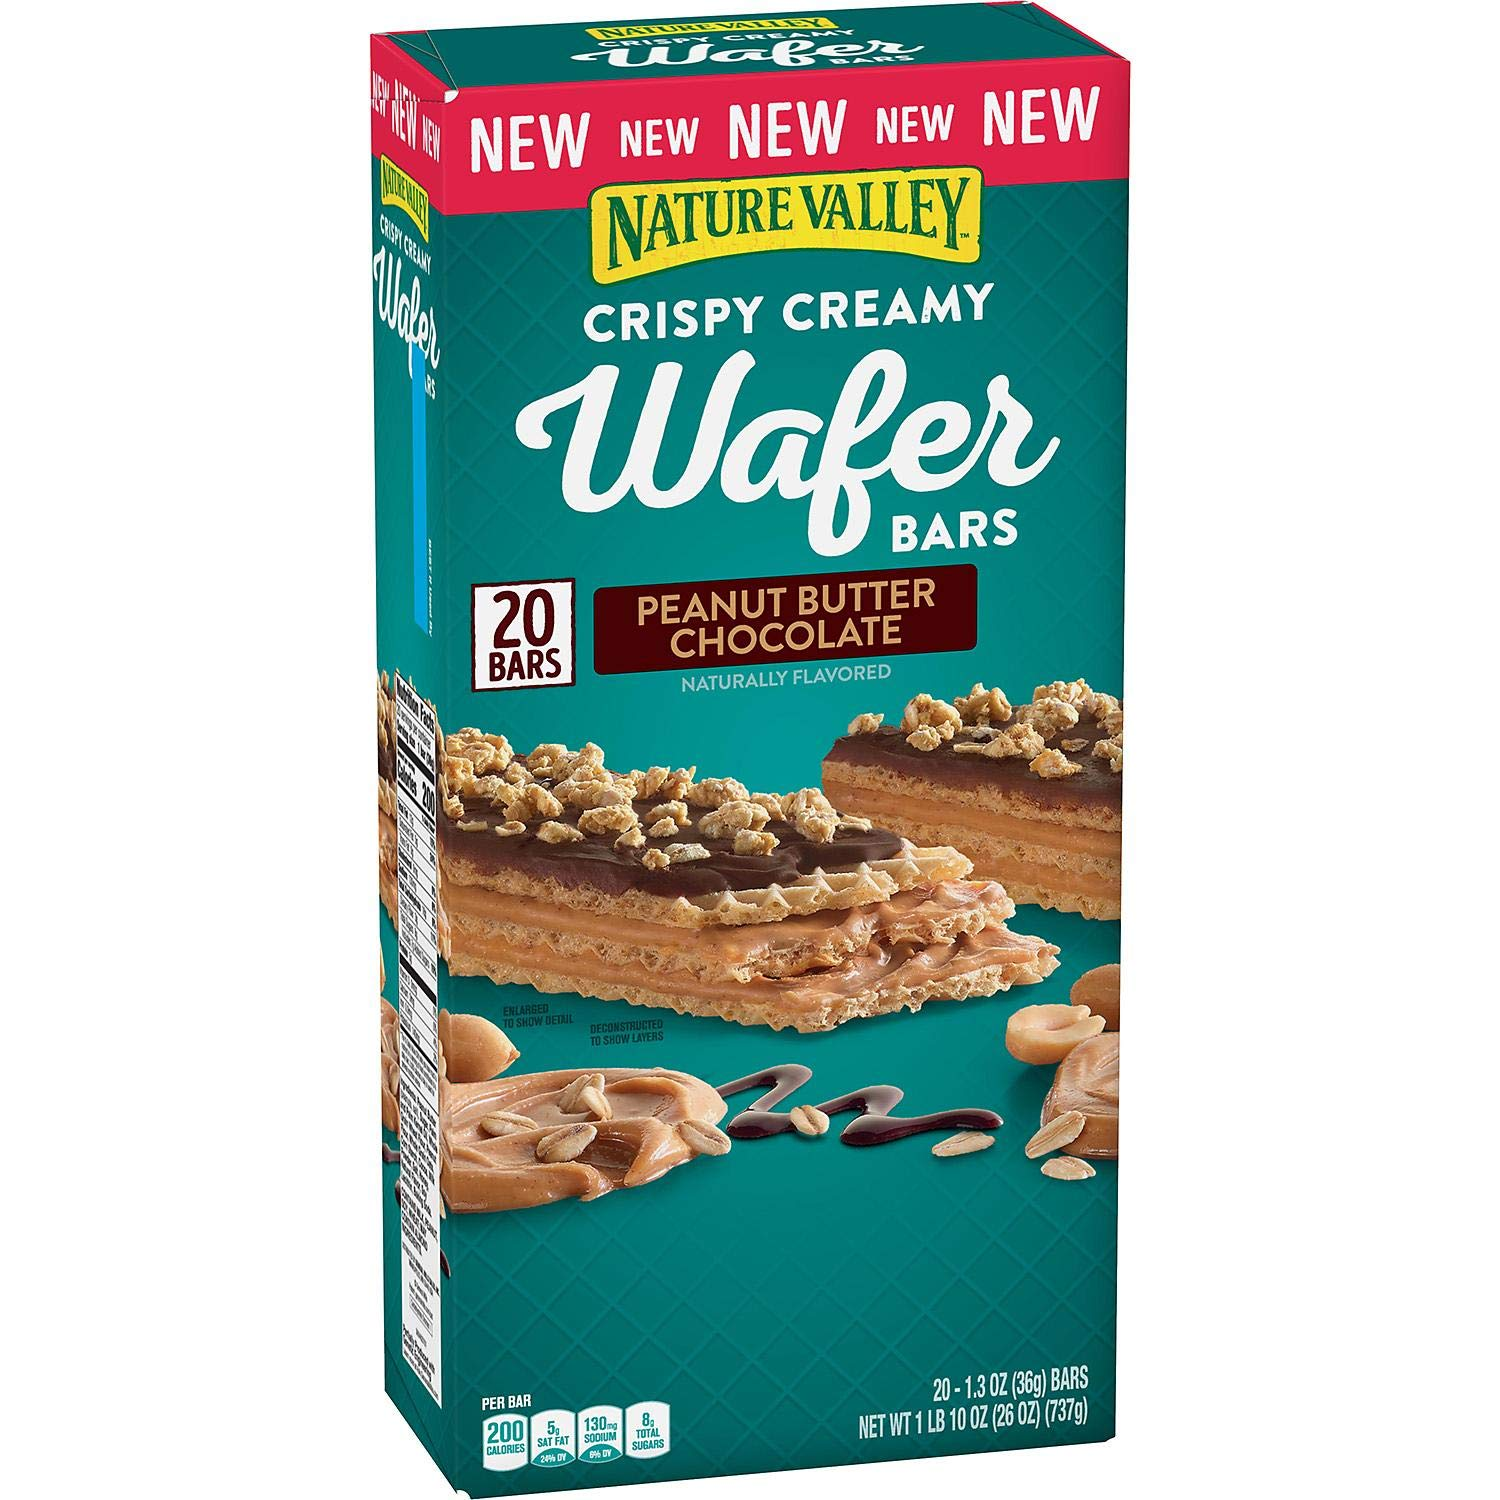 Nature Valley Nature Valley Crispy Creamy Wafer Bars Peanut Butter Chocolate 20 X 1.3 OunceNet Wt 26 Ounce , 26 Ounce